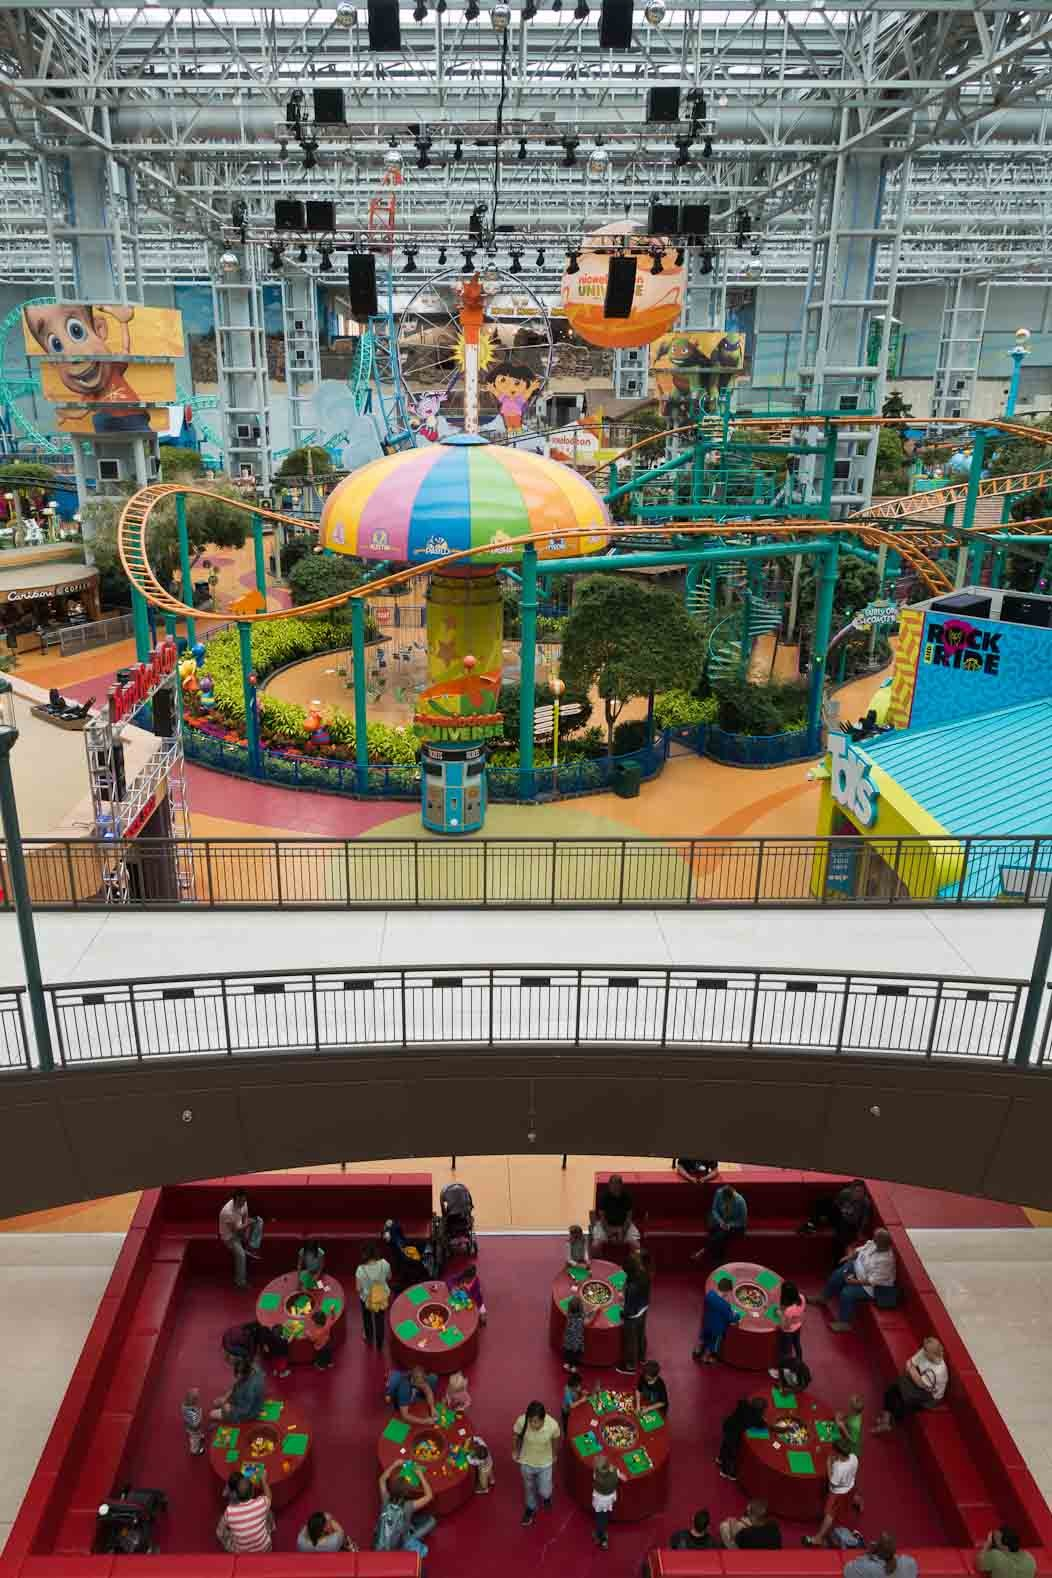 Mall of America, Minneapolis: Destination Thrill on FalcondaleLife blog. The biggest shopping mall in America also has a theme park and many other thrilling attractions to make it a tourist destination in its own right. Nickelodeon Universe theme park and Lego play area.